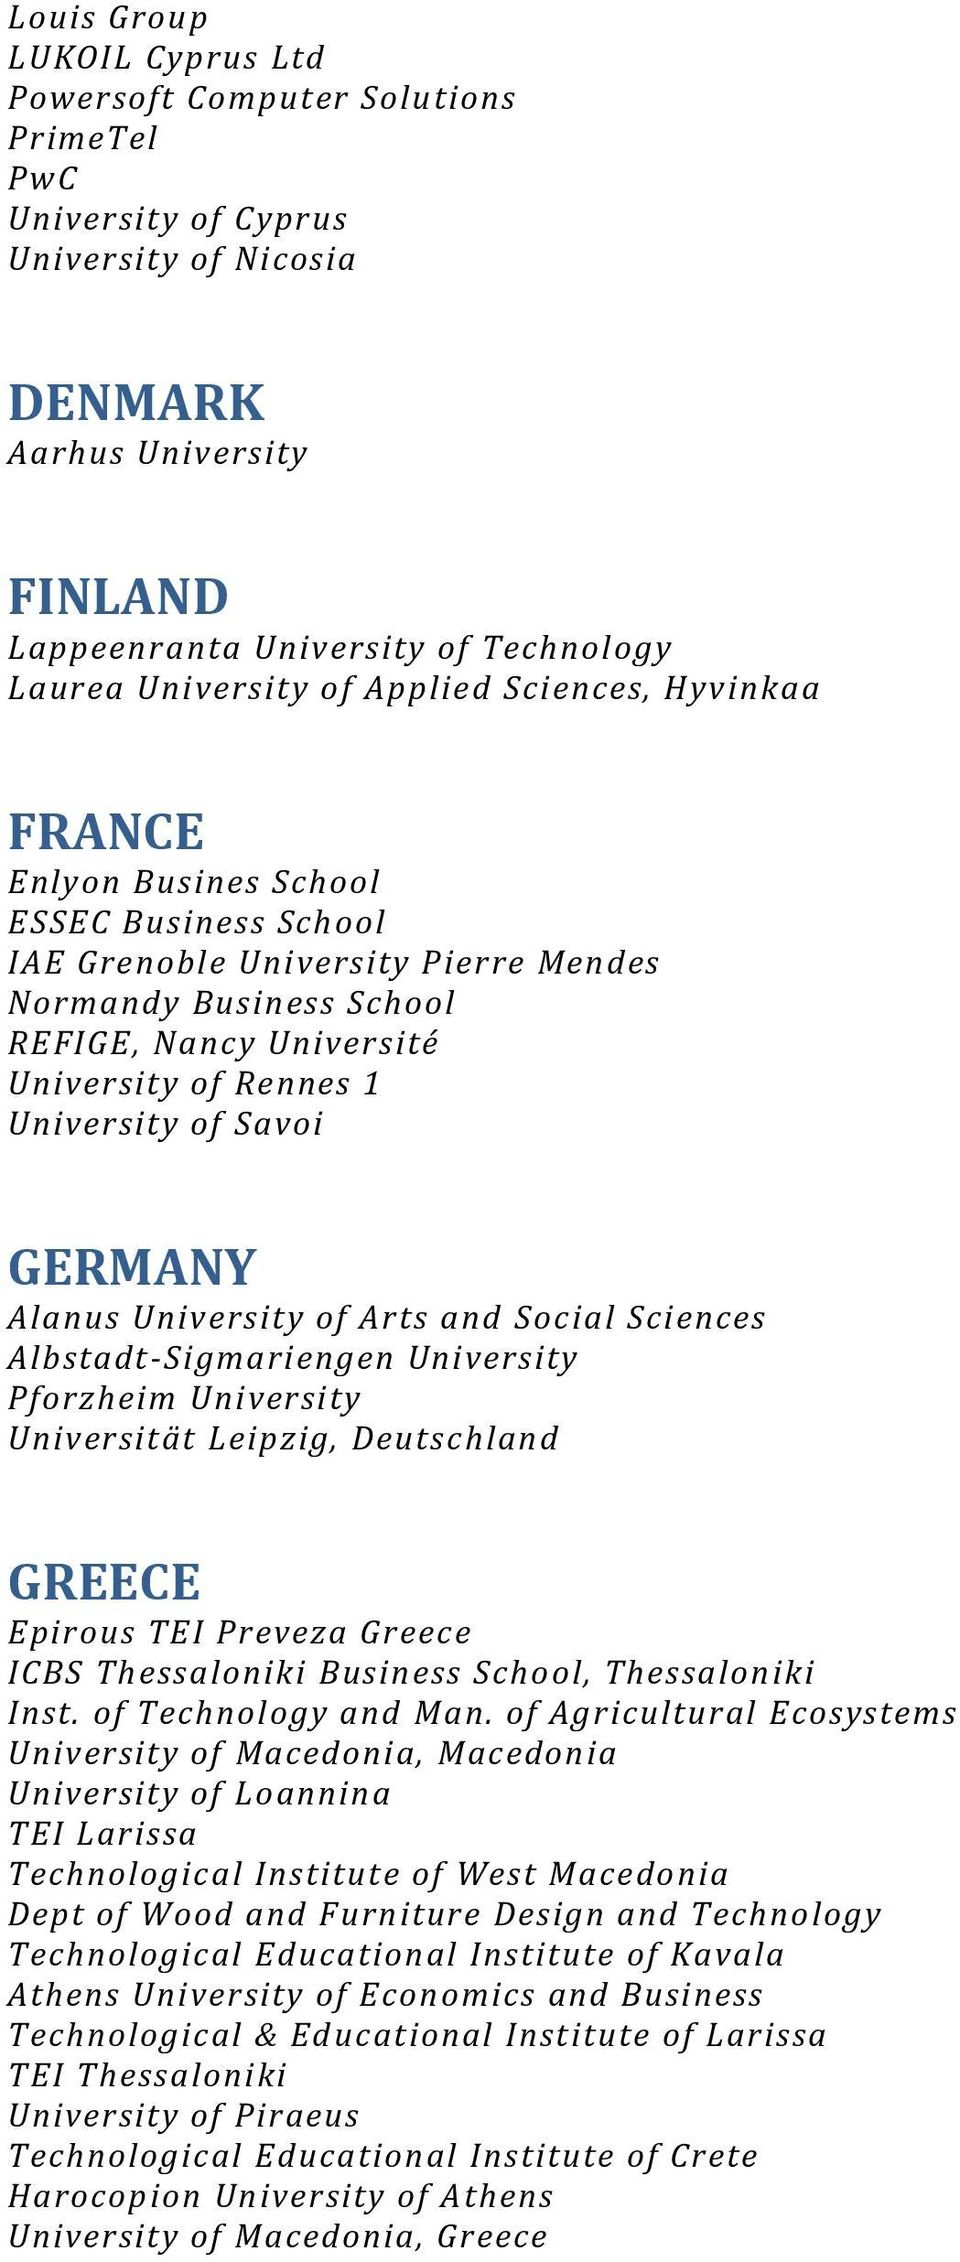 Rennes 1 University of Savoi GERMANY Alanus University of Arts and Social Sciences Albstadt-Sigmariengen University Pforzheim University Universität Leipzig, Deutschland GREECE Epirous TEI Preveza